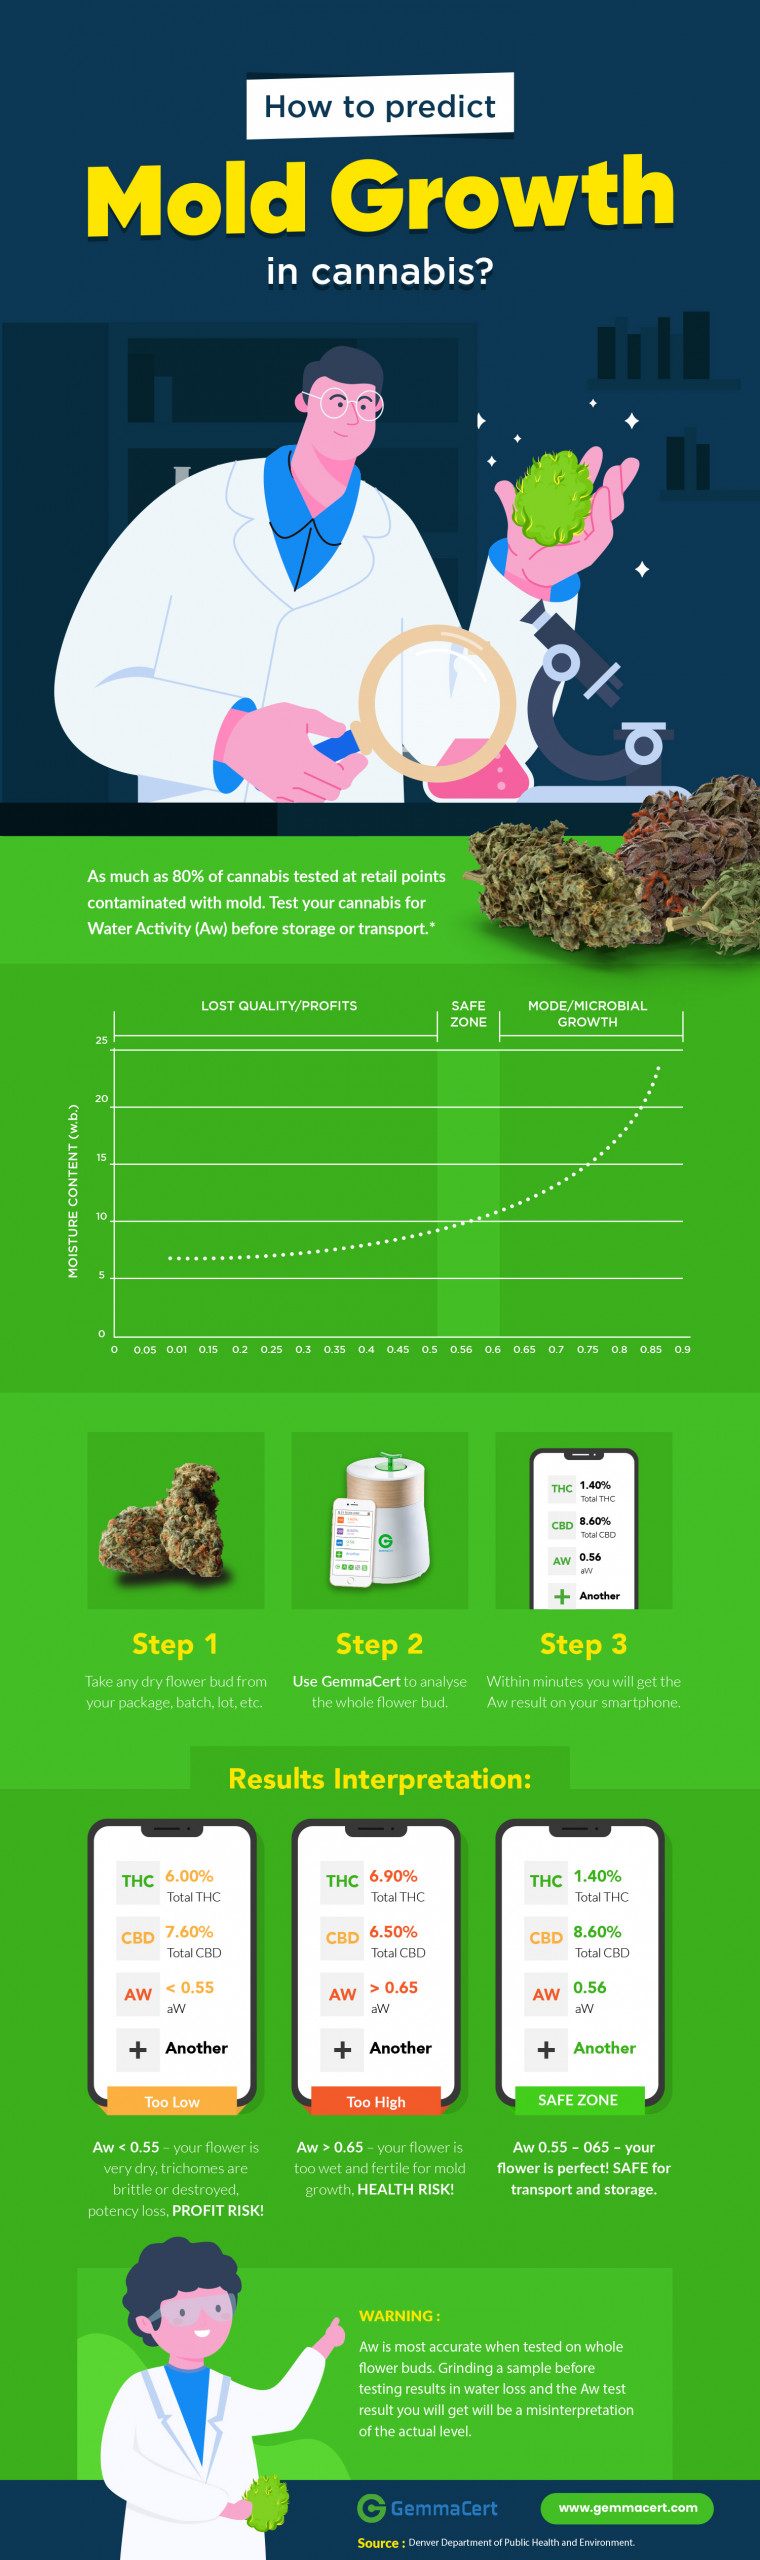 How to predict Mold Growth in cannabis? Infographic